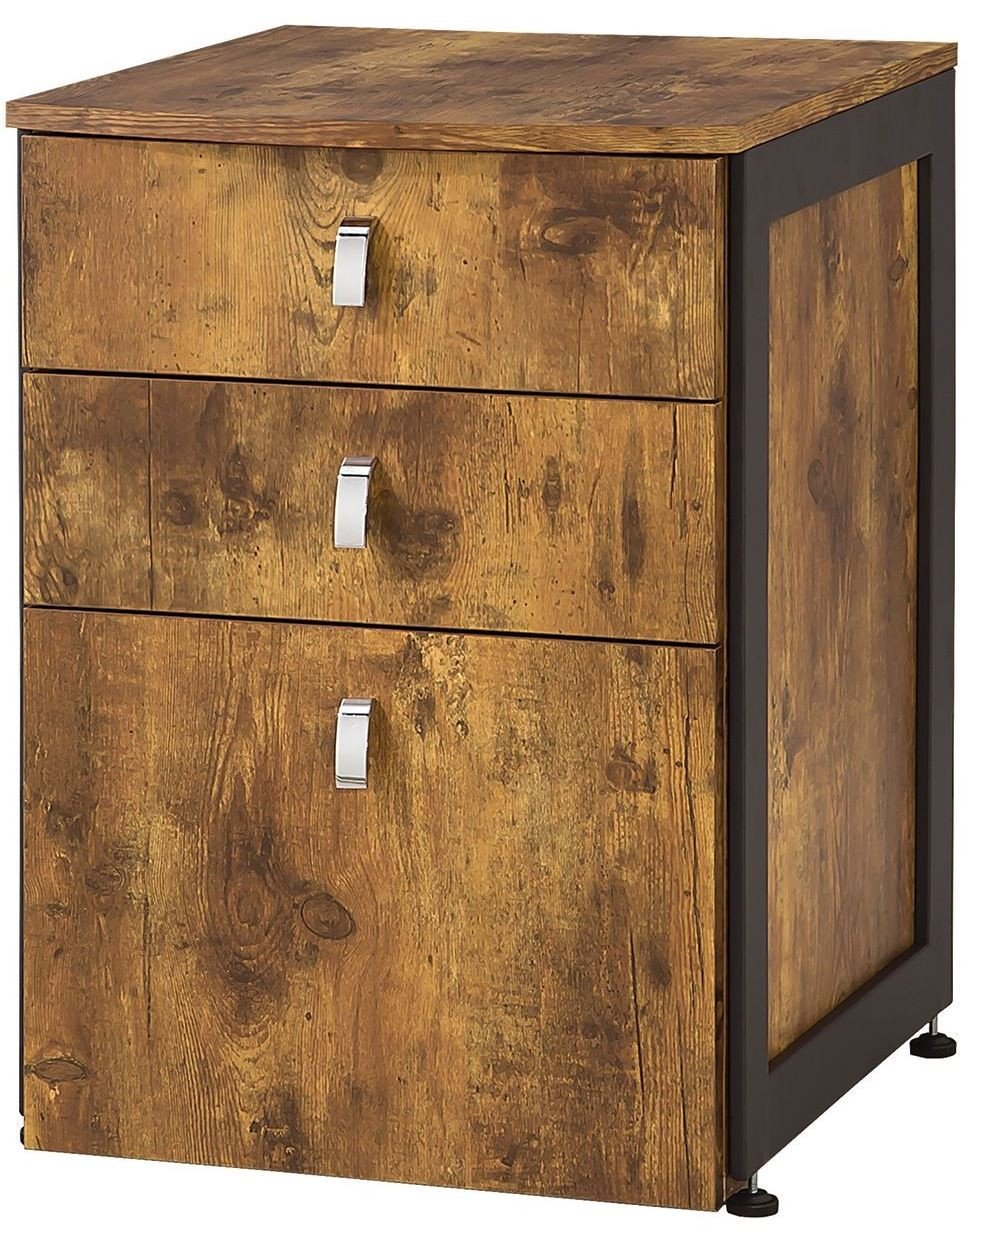 Merveilleux Amazon.com: Coaster Estrella Industrial Antique Nutmeg File Cabinet With 3  Drawers: Kitchen U0026 Dining